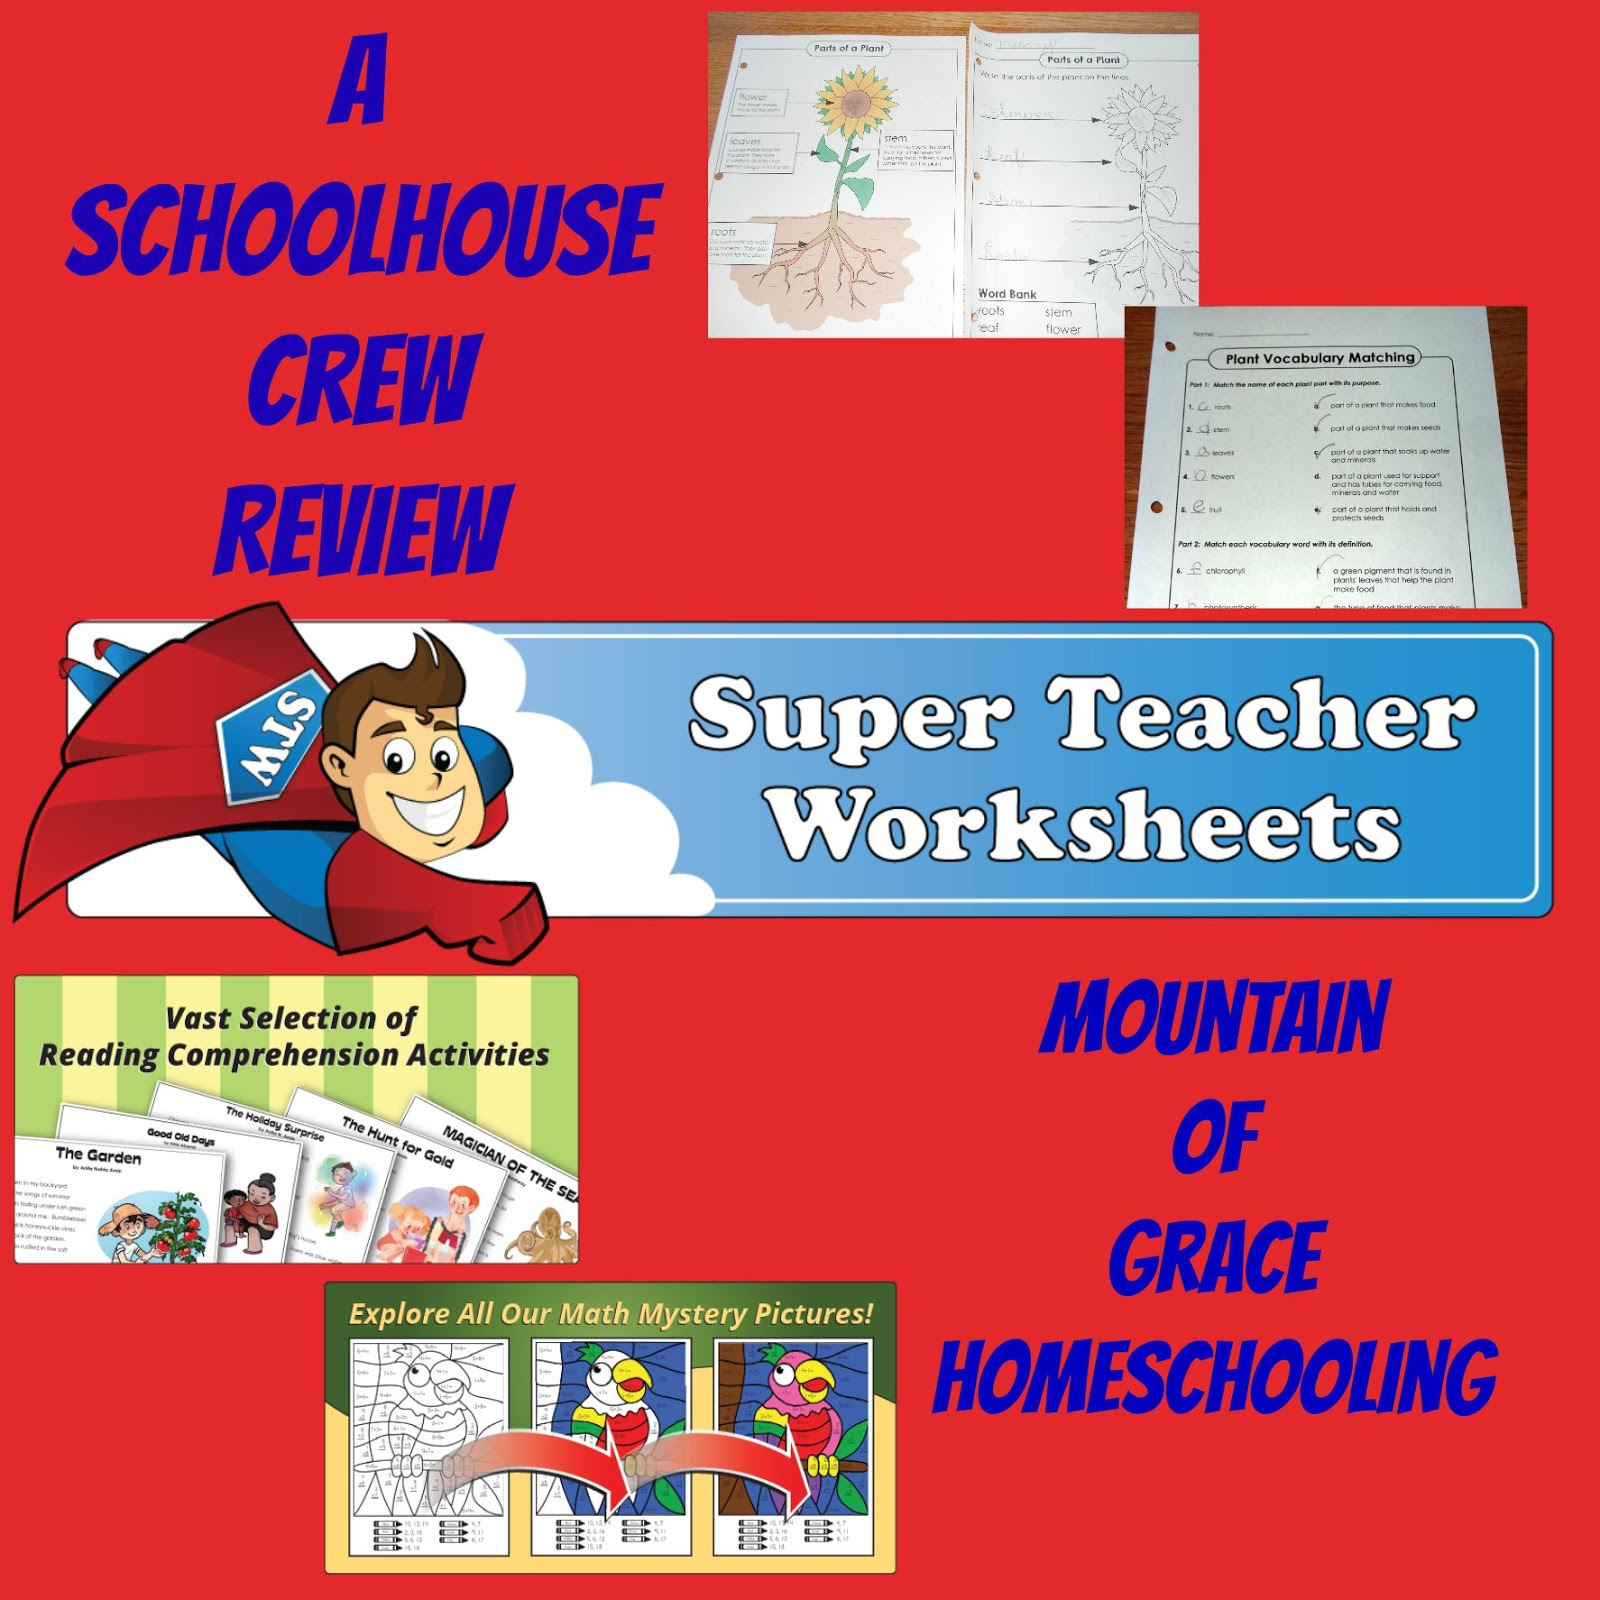 Mountain Of Grace Homeschooling Tos Review For Super